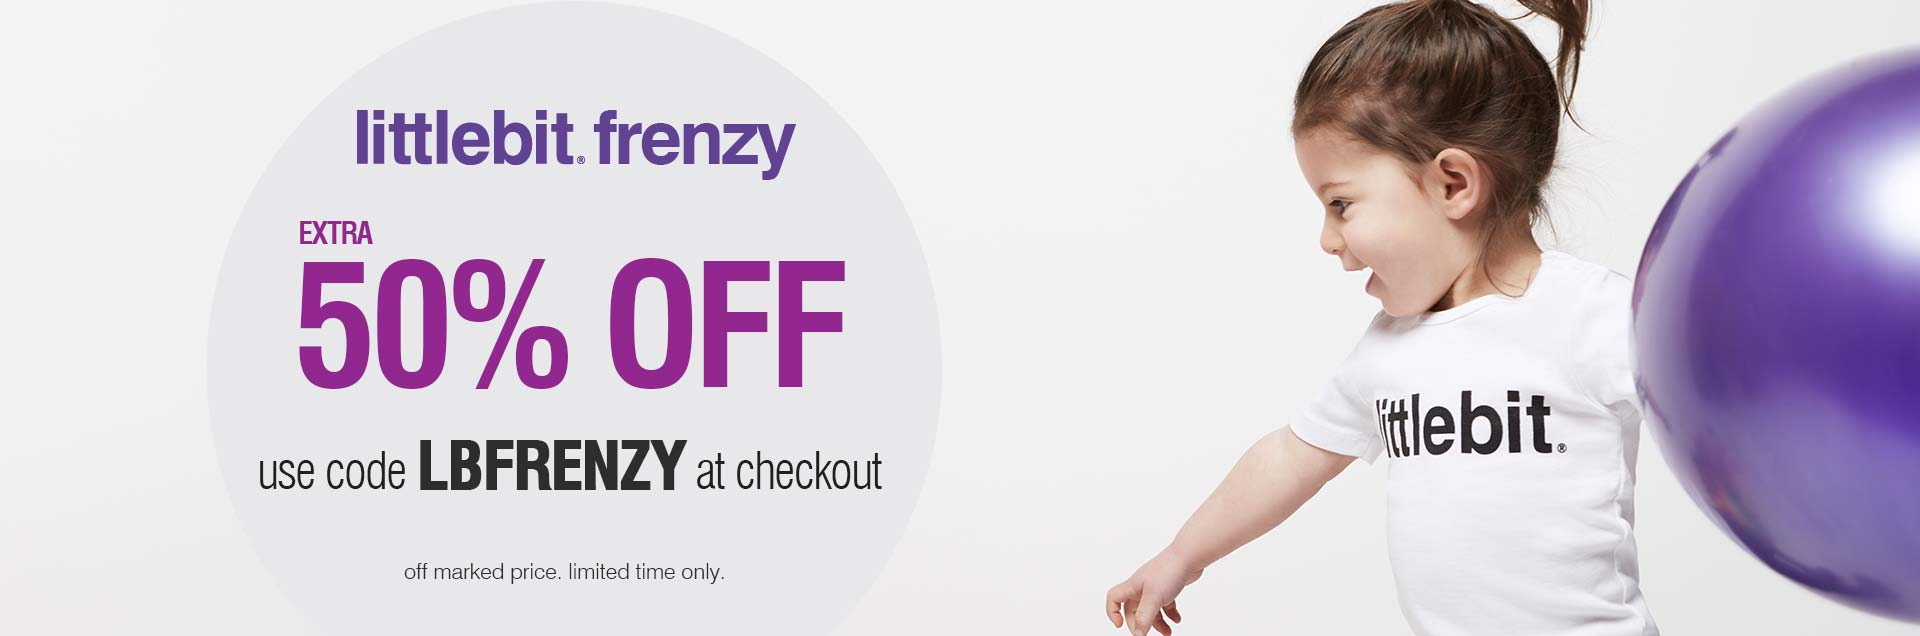 littlbit frenzy - Use code LBFRENZY at checkout